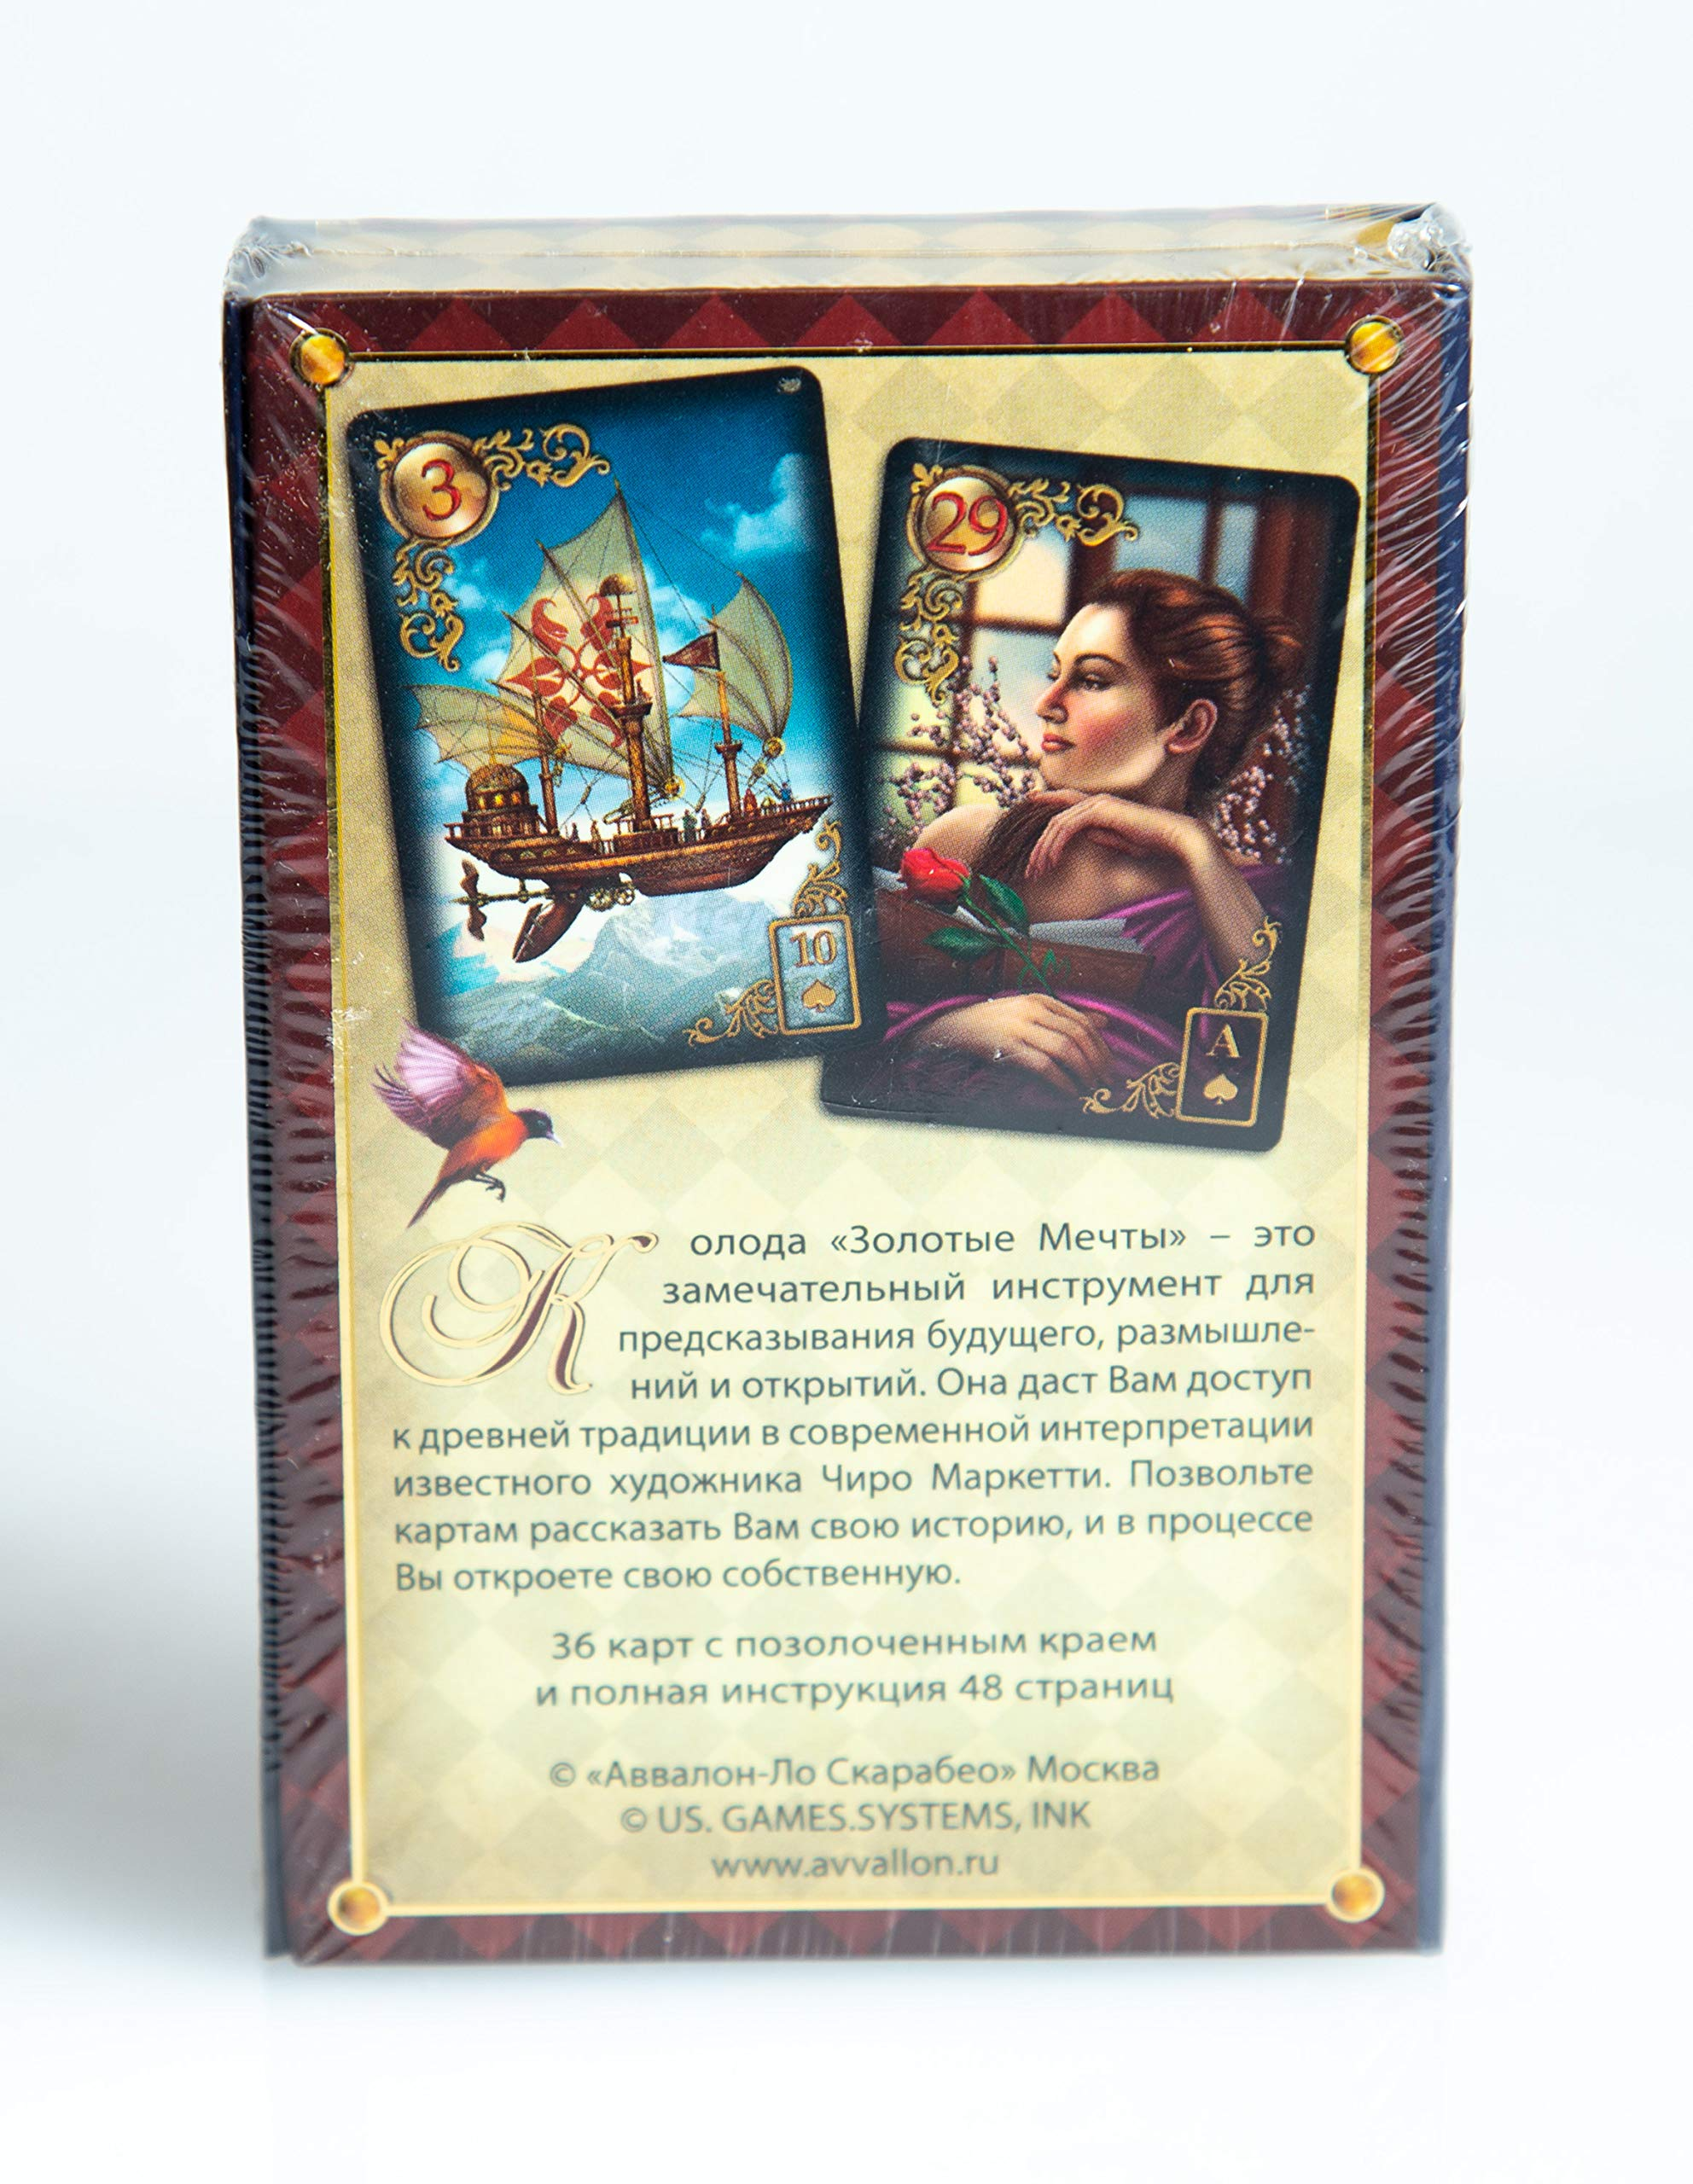 Gilded Reverie Lenormand by Chiro Marchetti 36 Tarot Card Deck Russian Edition (with Gold Trim) by Avvalon, Russia (Image #3)